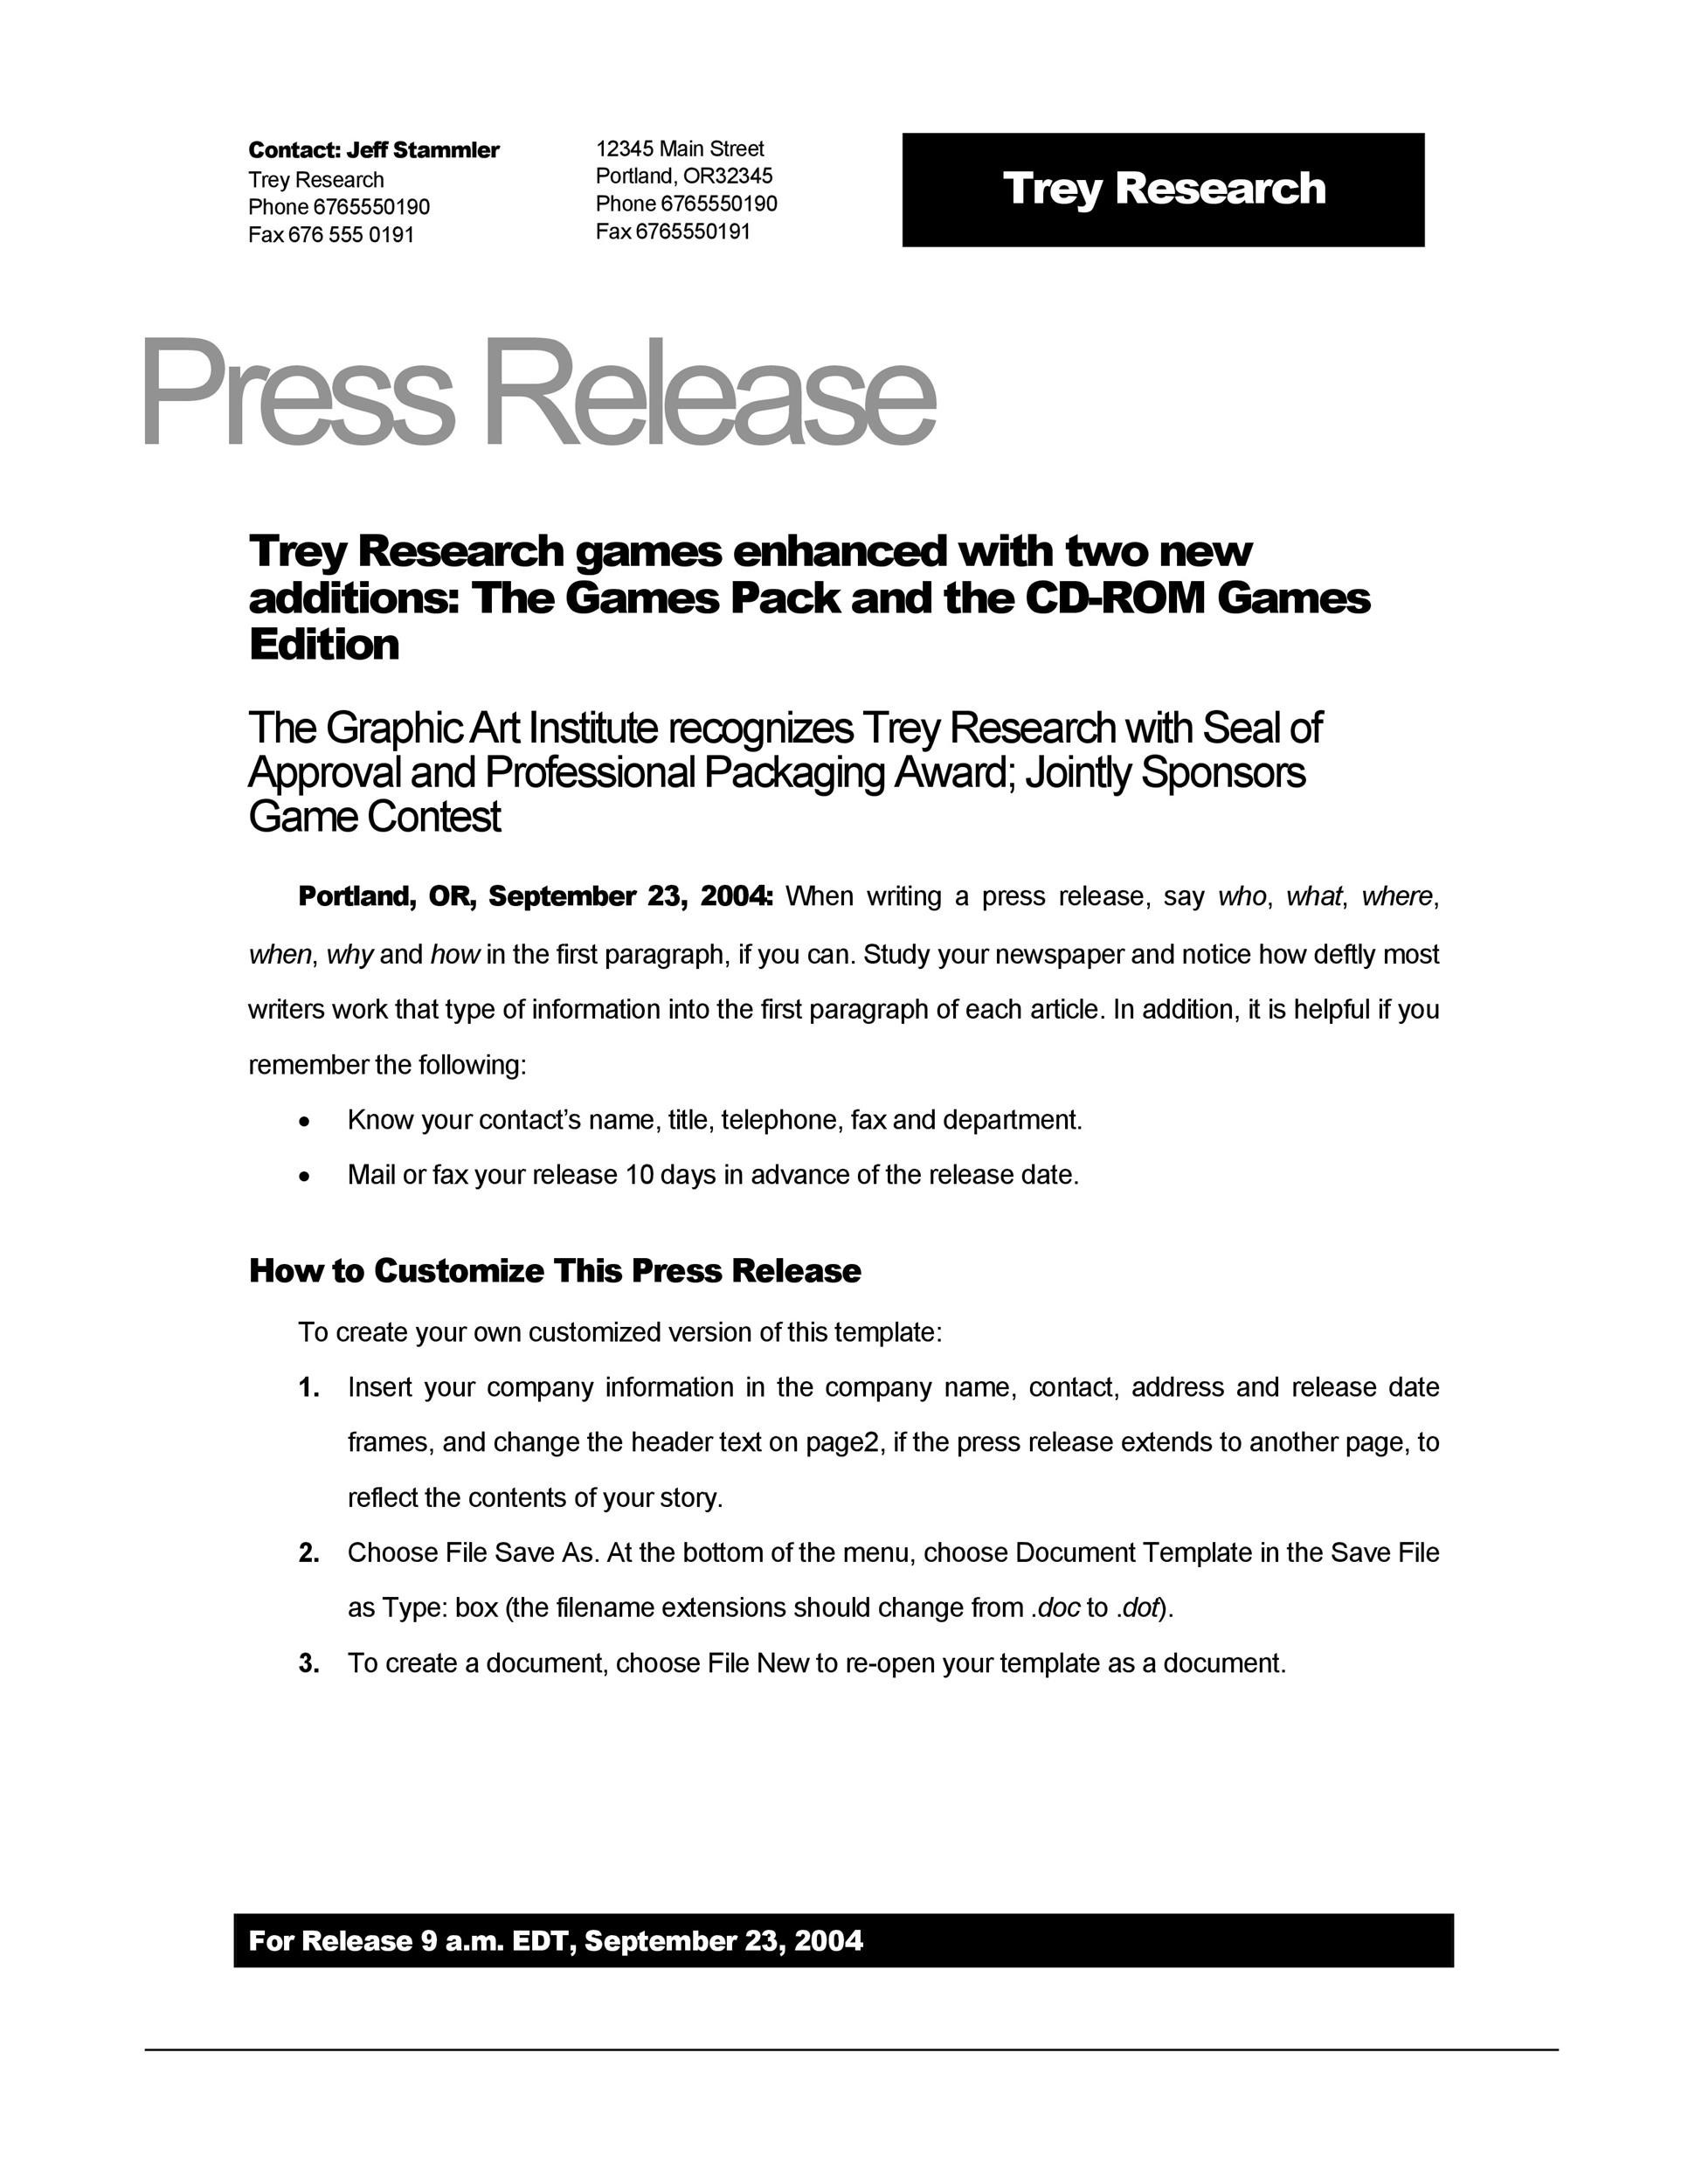 46 press release format templates examples samples for How to write a press release for an event template